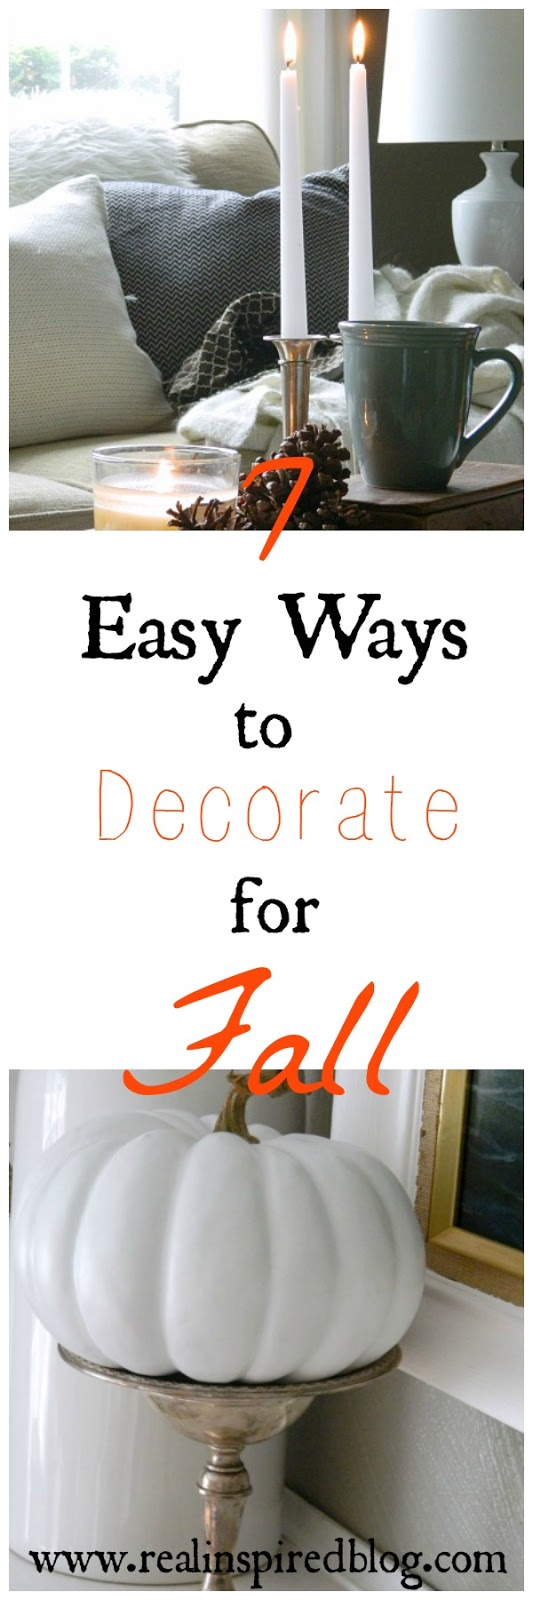 7 Easy Ways to Decorate for Fall